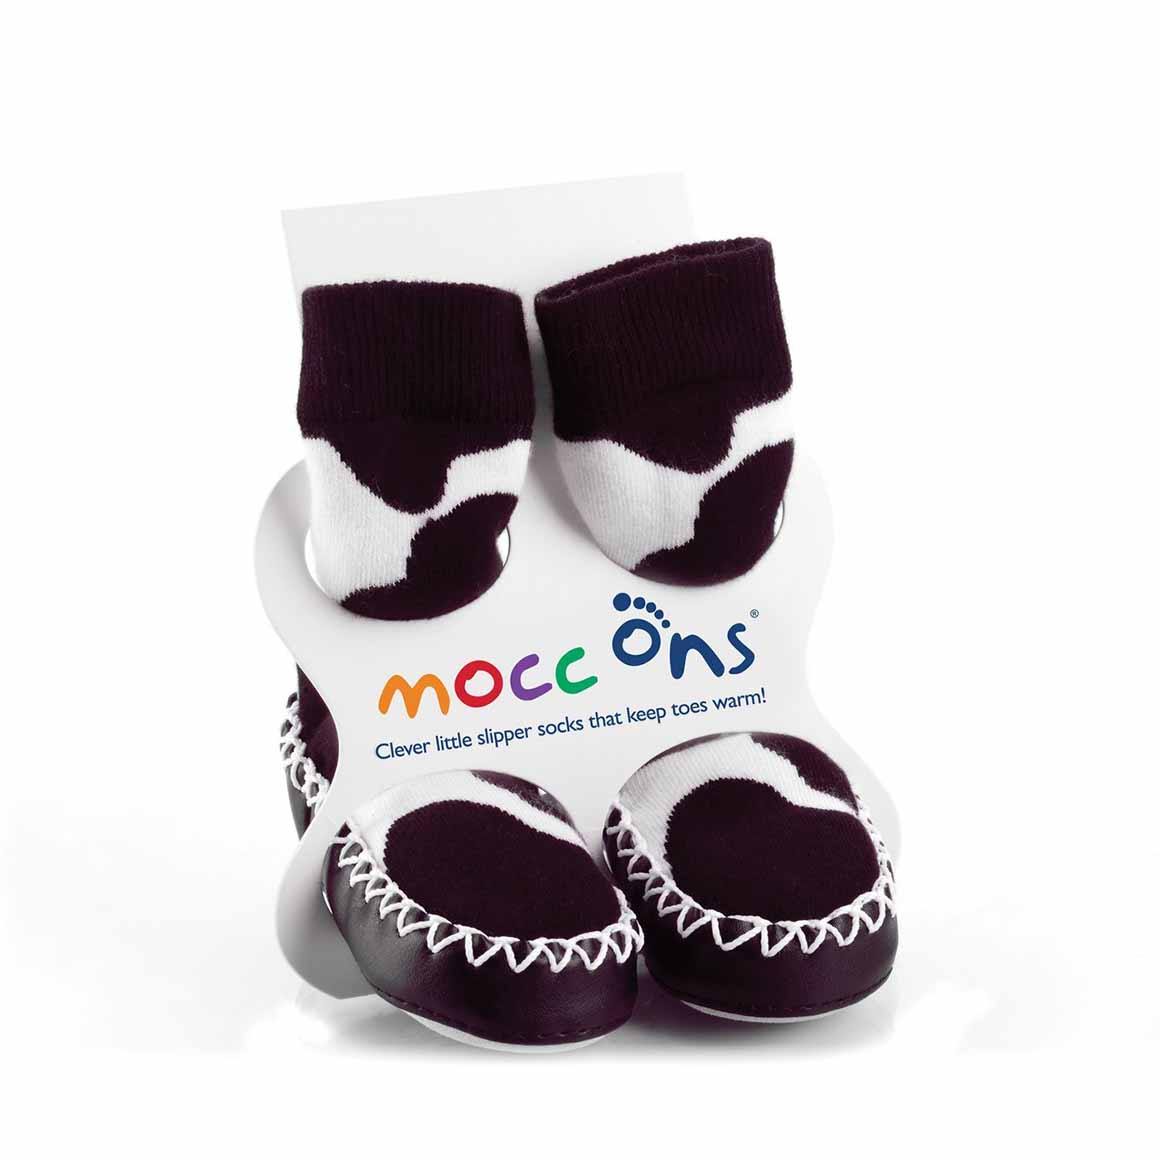 MOCC ONS Cow Print 6-12 | Trada Marketplace